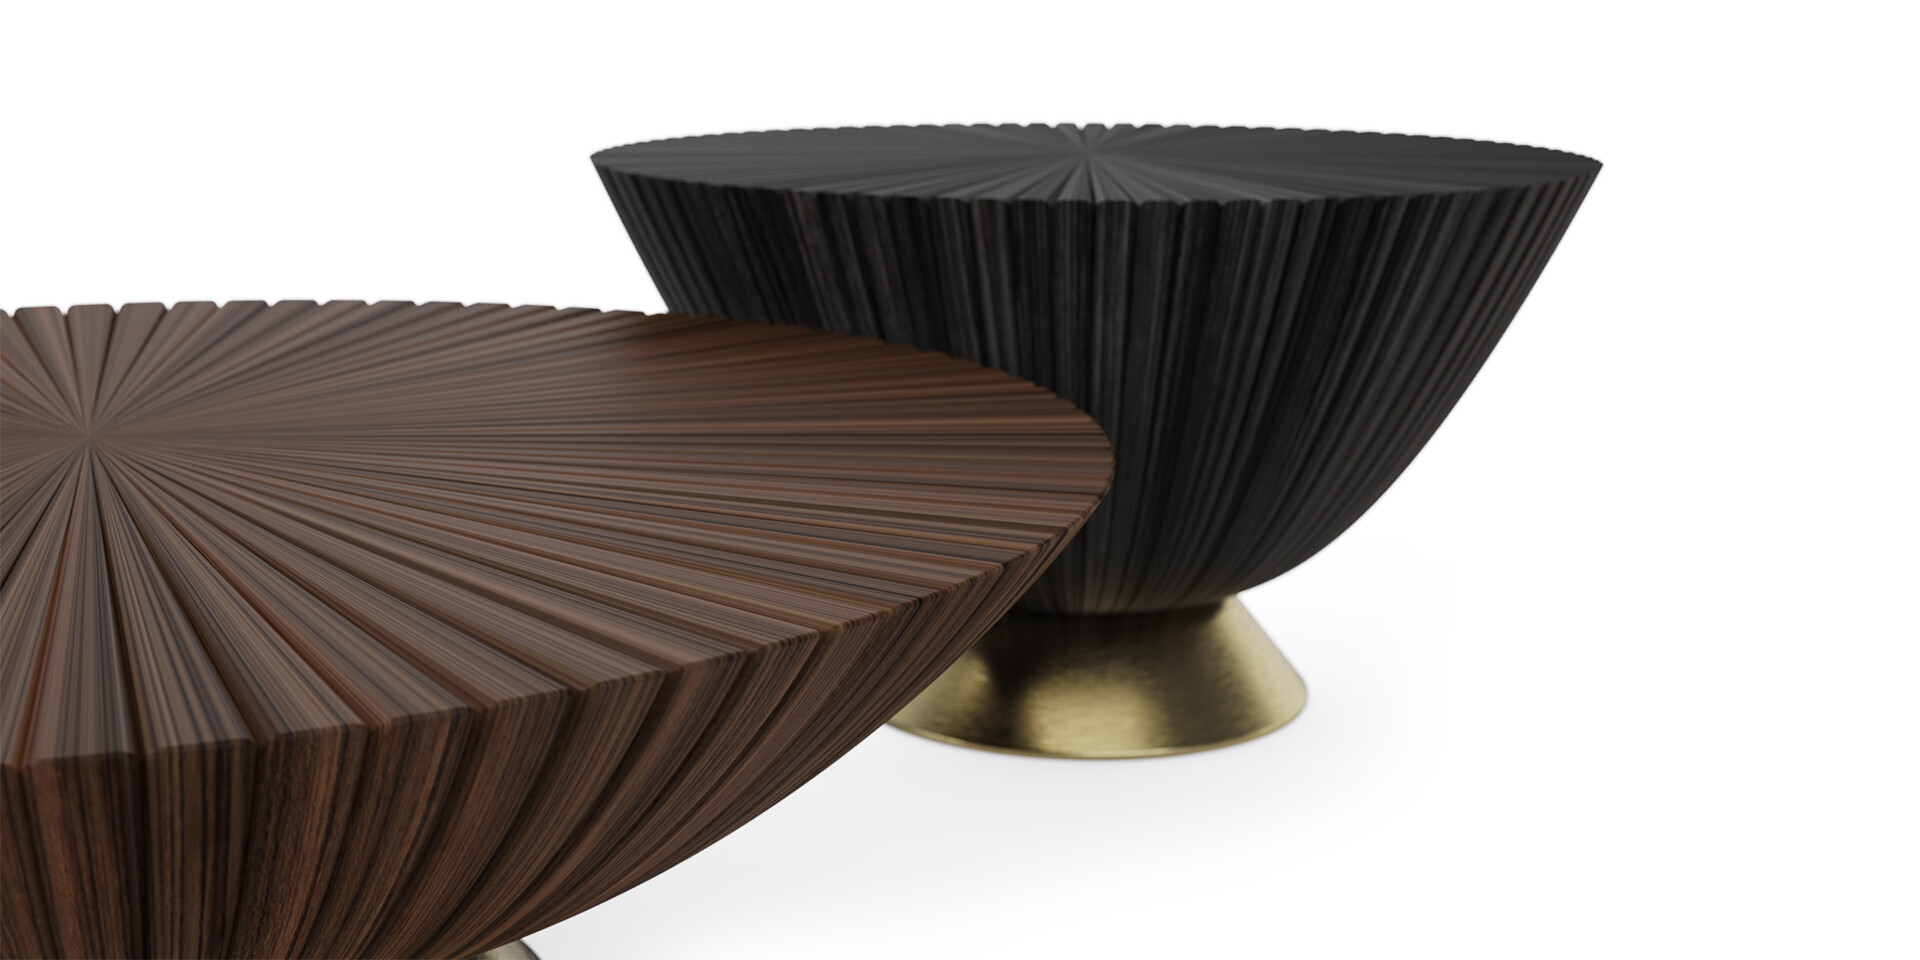 GOATHI COFFEE TABLE - Detail Side View - ALMA de LUCE